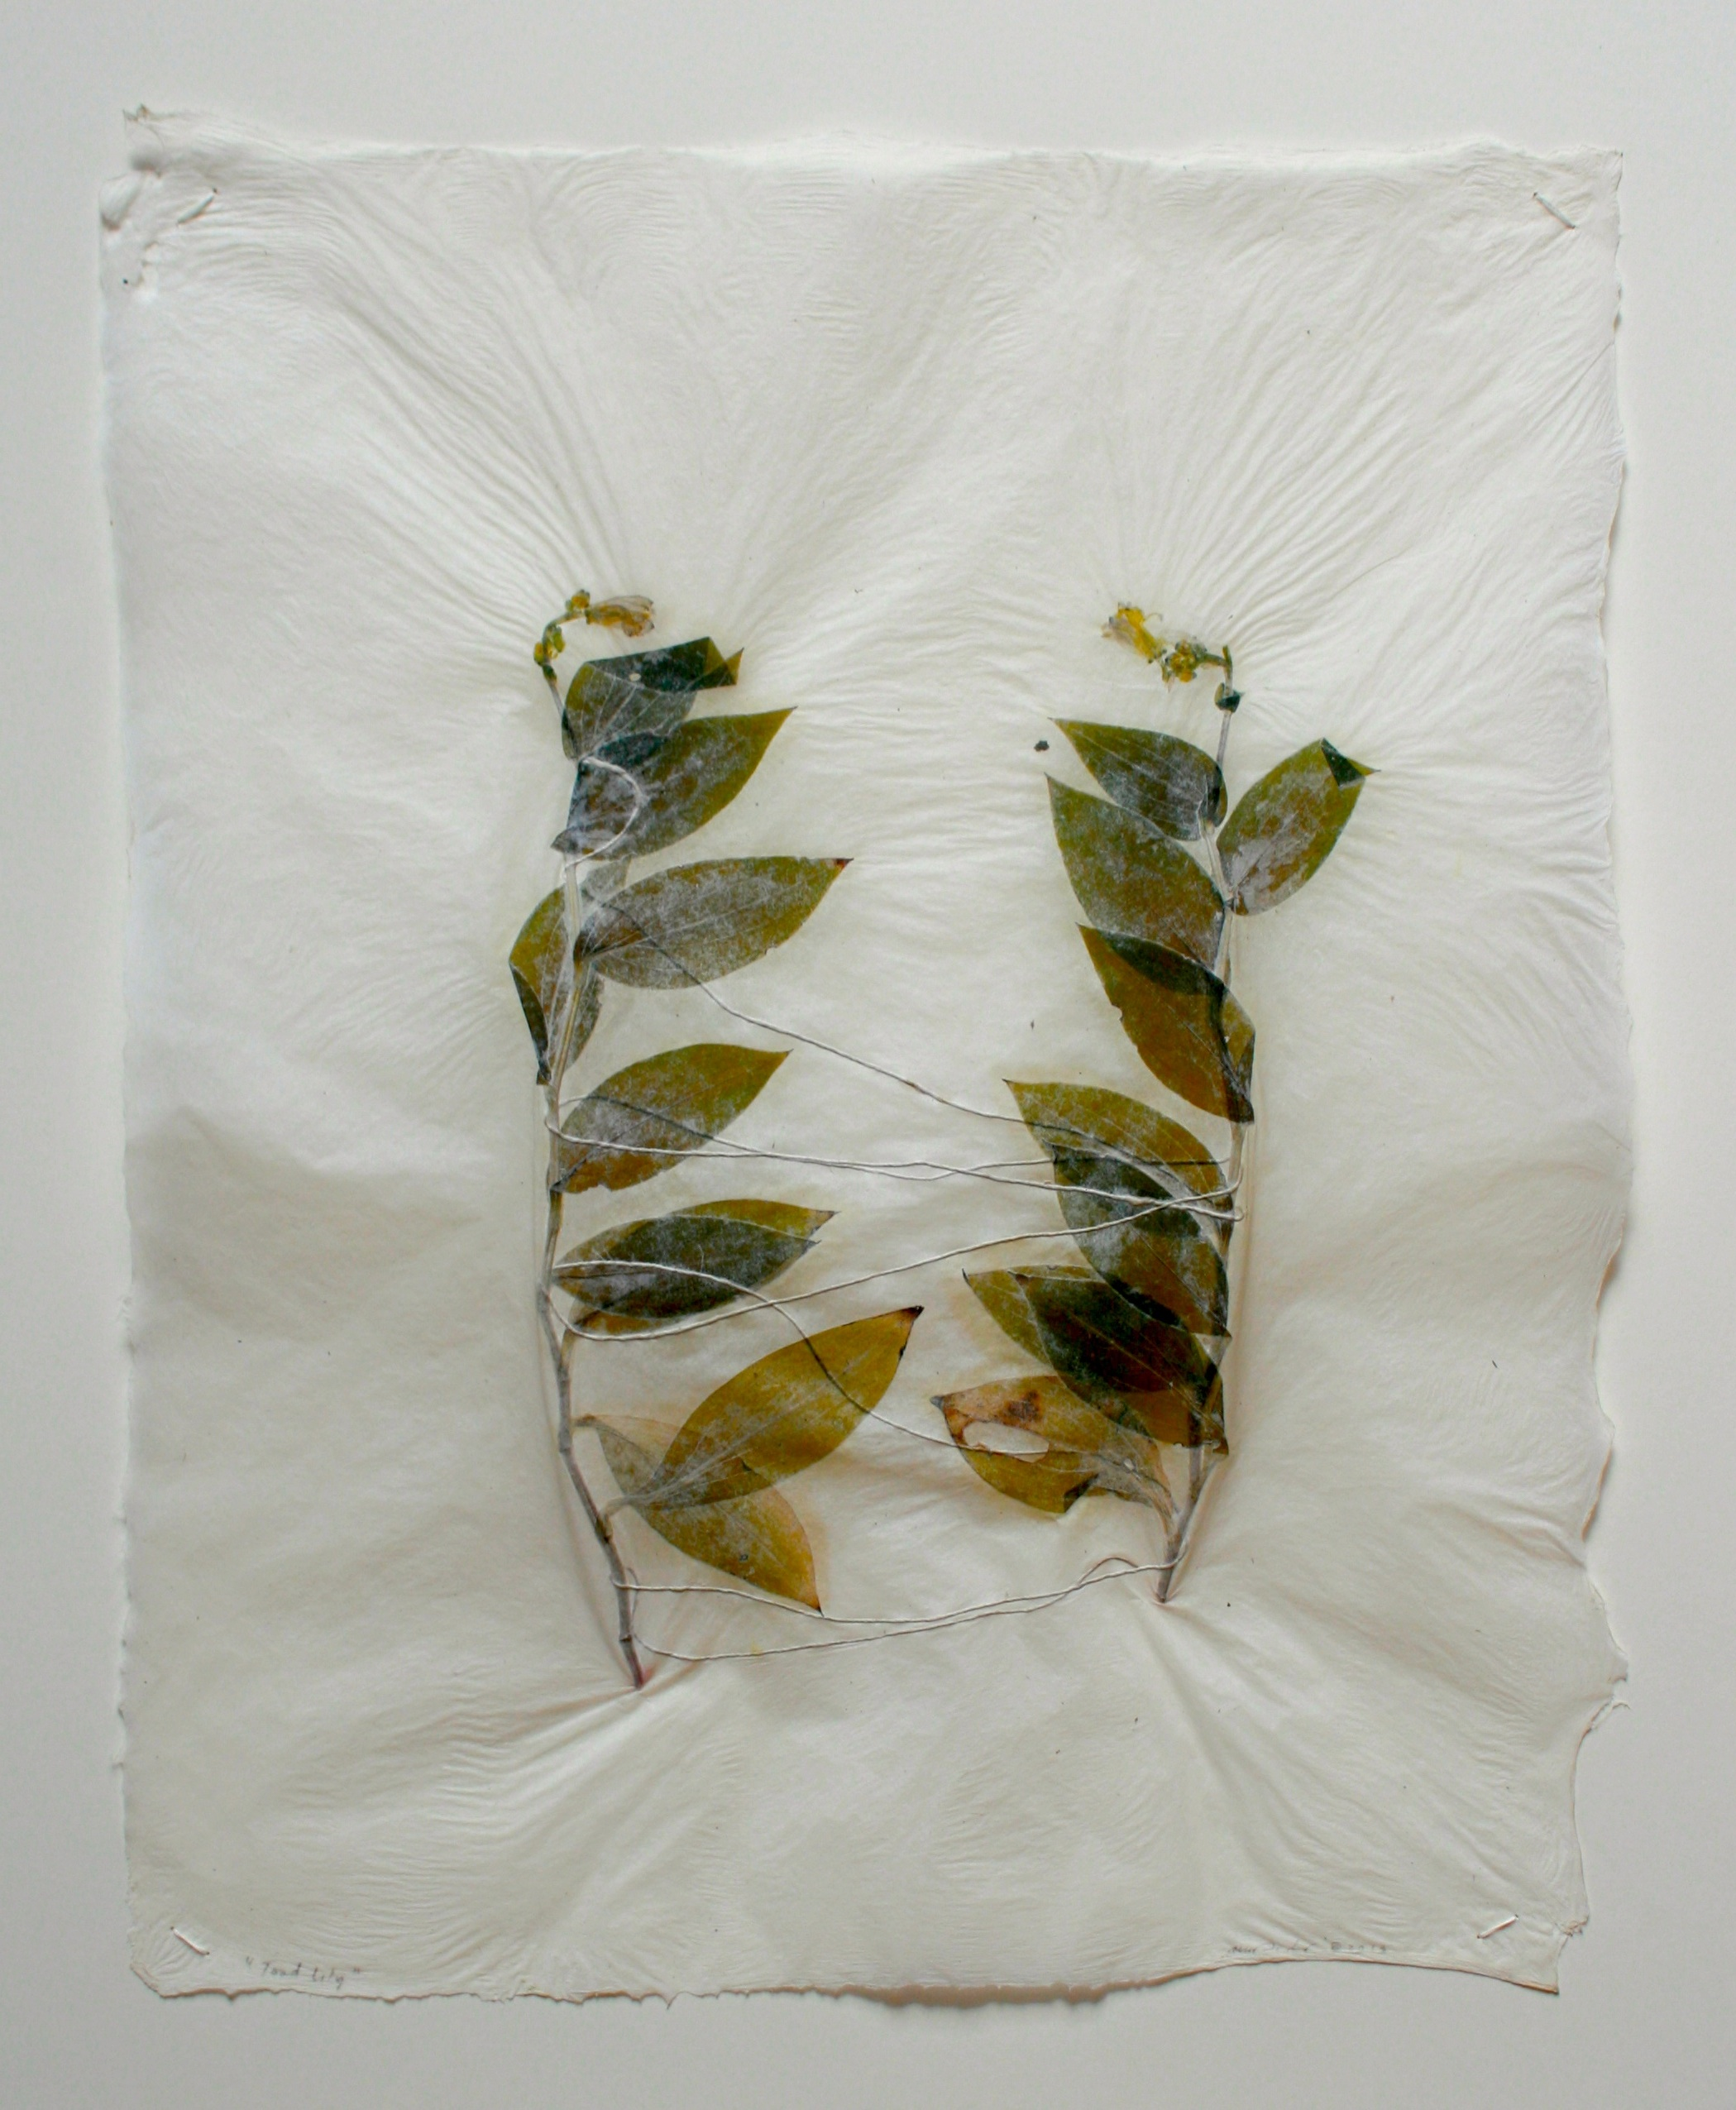 Ann Marie Kennedy - Toad Lily - Abaca paper with plants and string: 2013